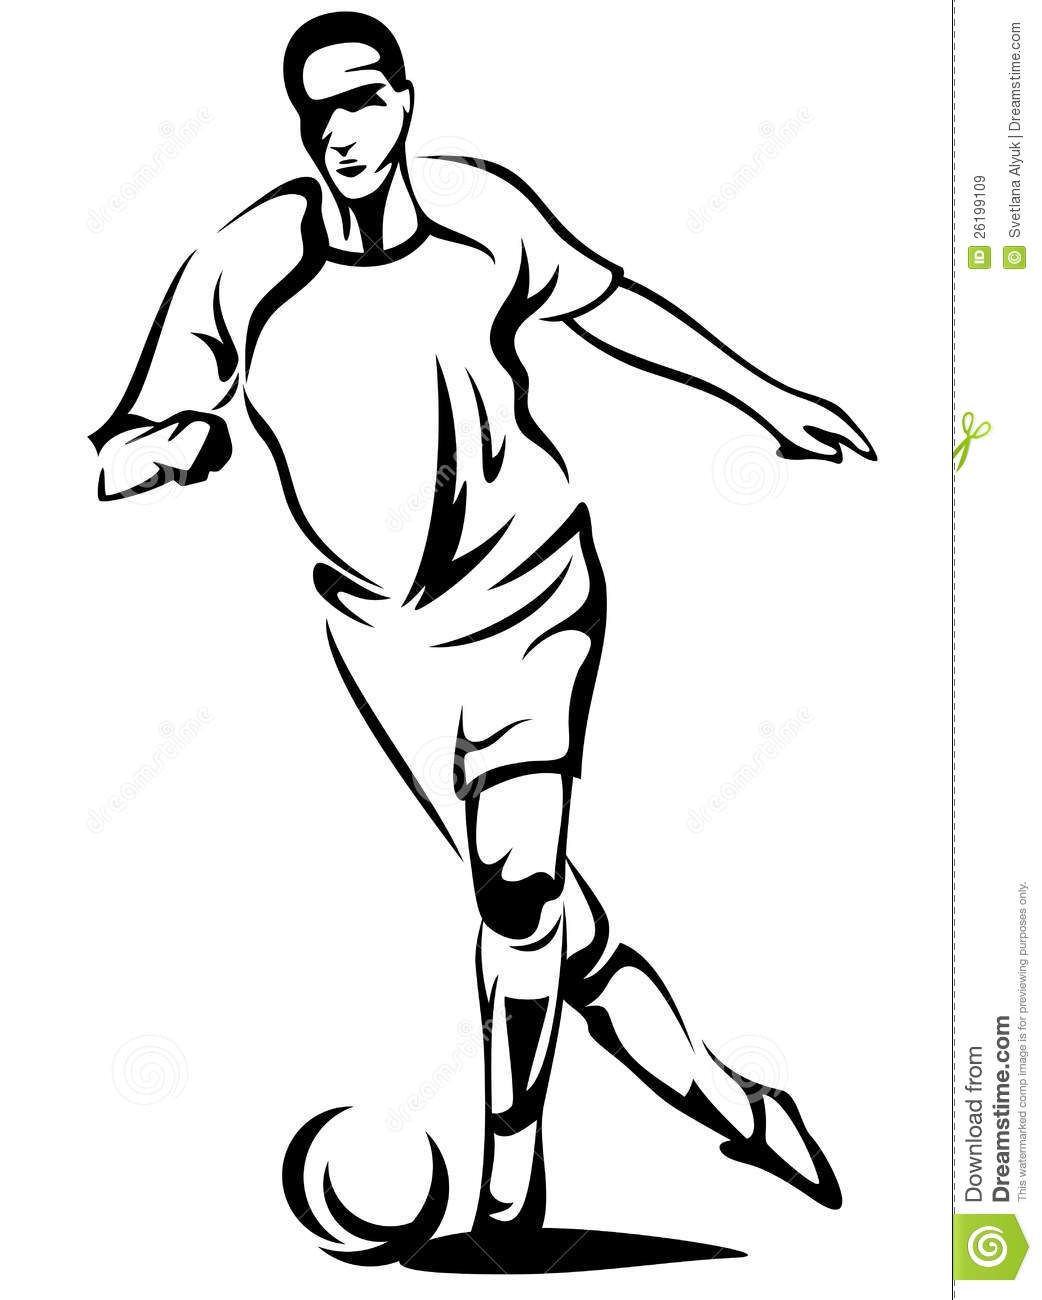 football player line drawing at getdrawings com free for personal rh getdrawings com boy playing soccer clipart black and white boy playing soccer clipart black and white